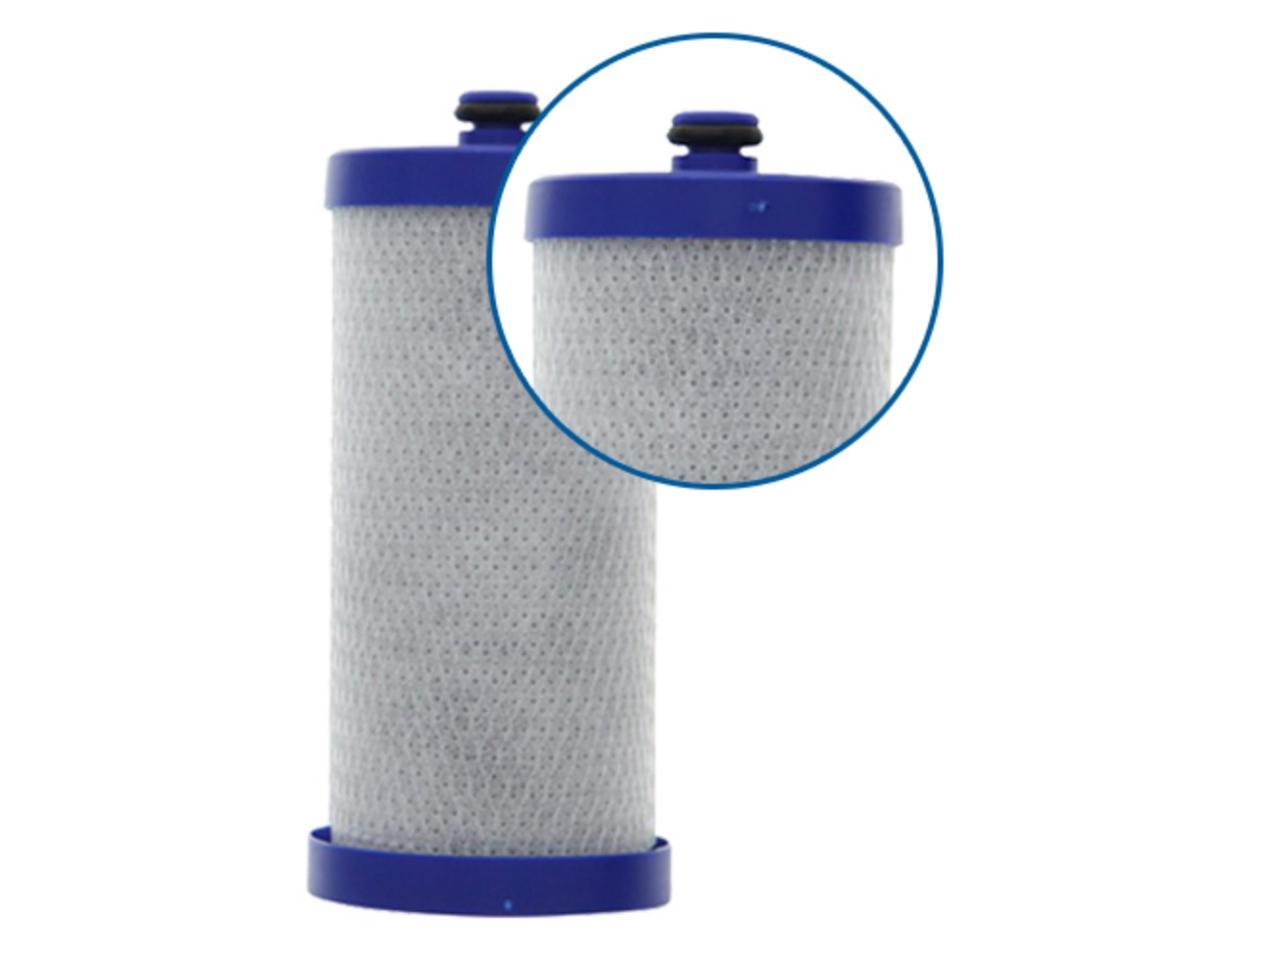 Refresh Water Filter 4Pack Fits Frigidaire FRS26R2AW5 Refrigerators